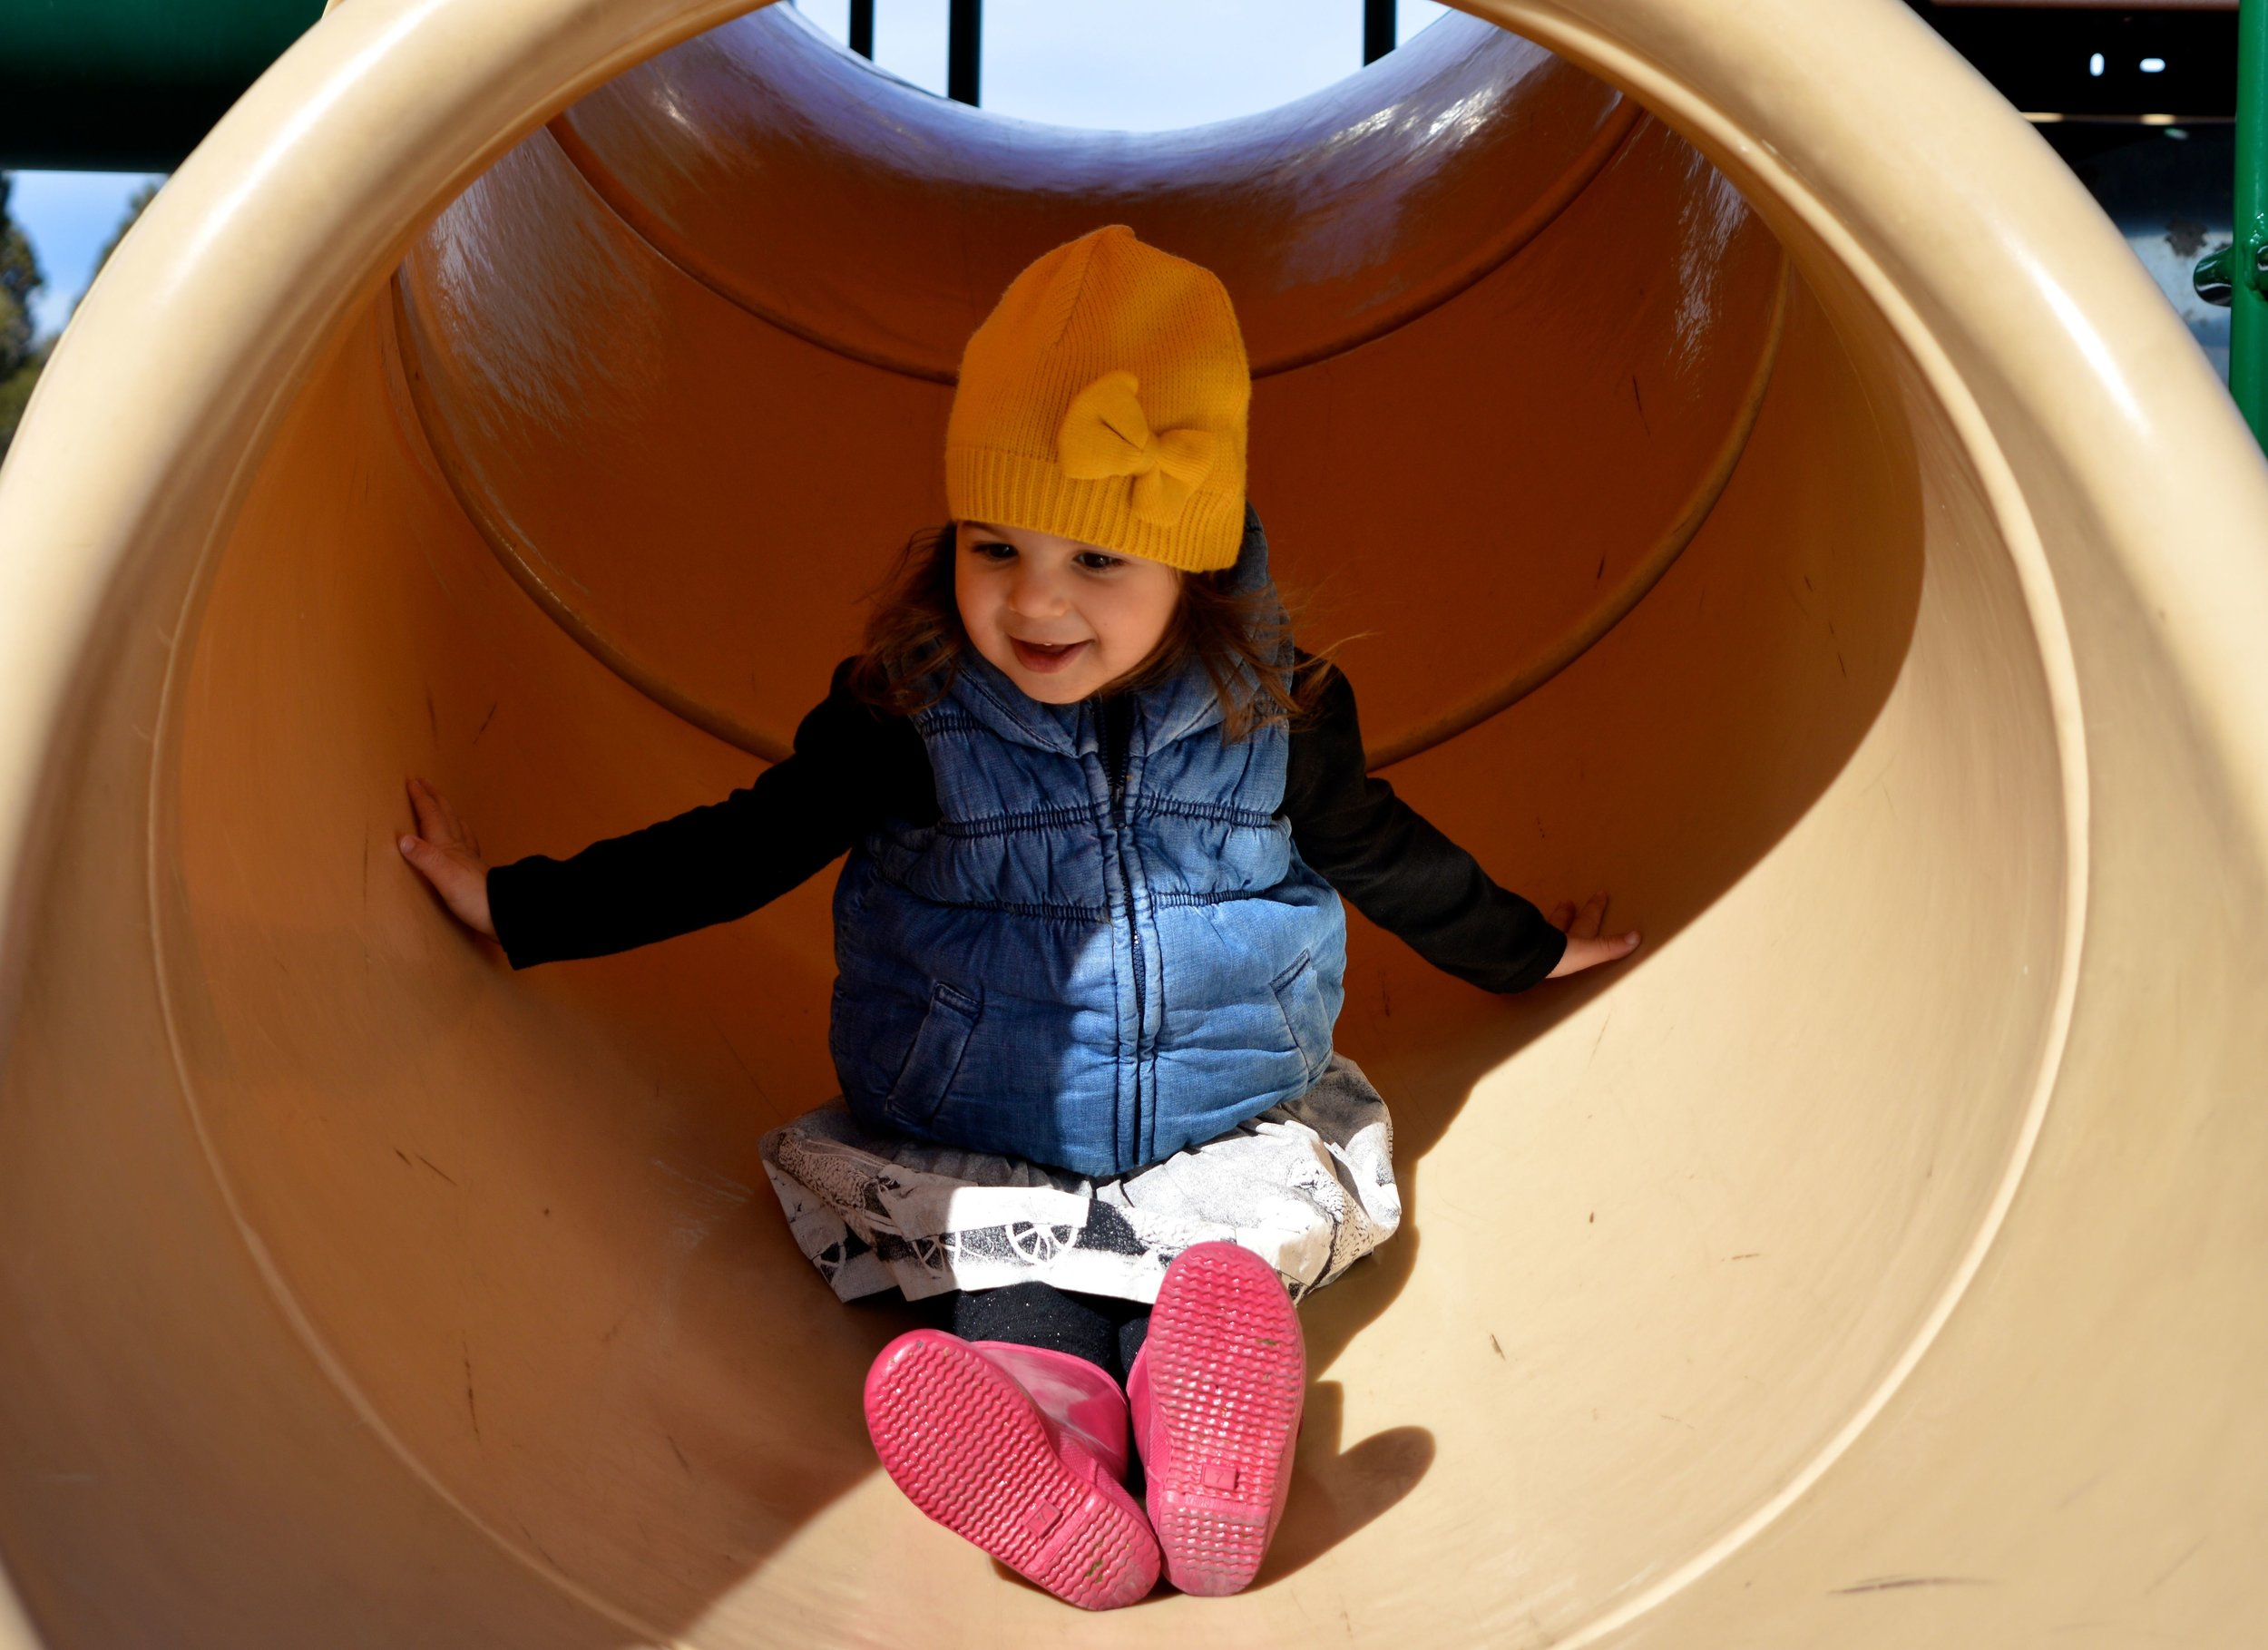 January-park-tube-slide-5.jpg